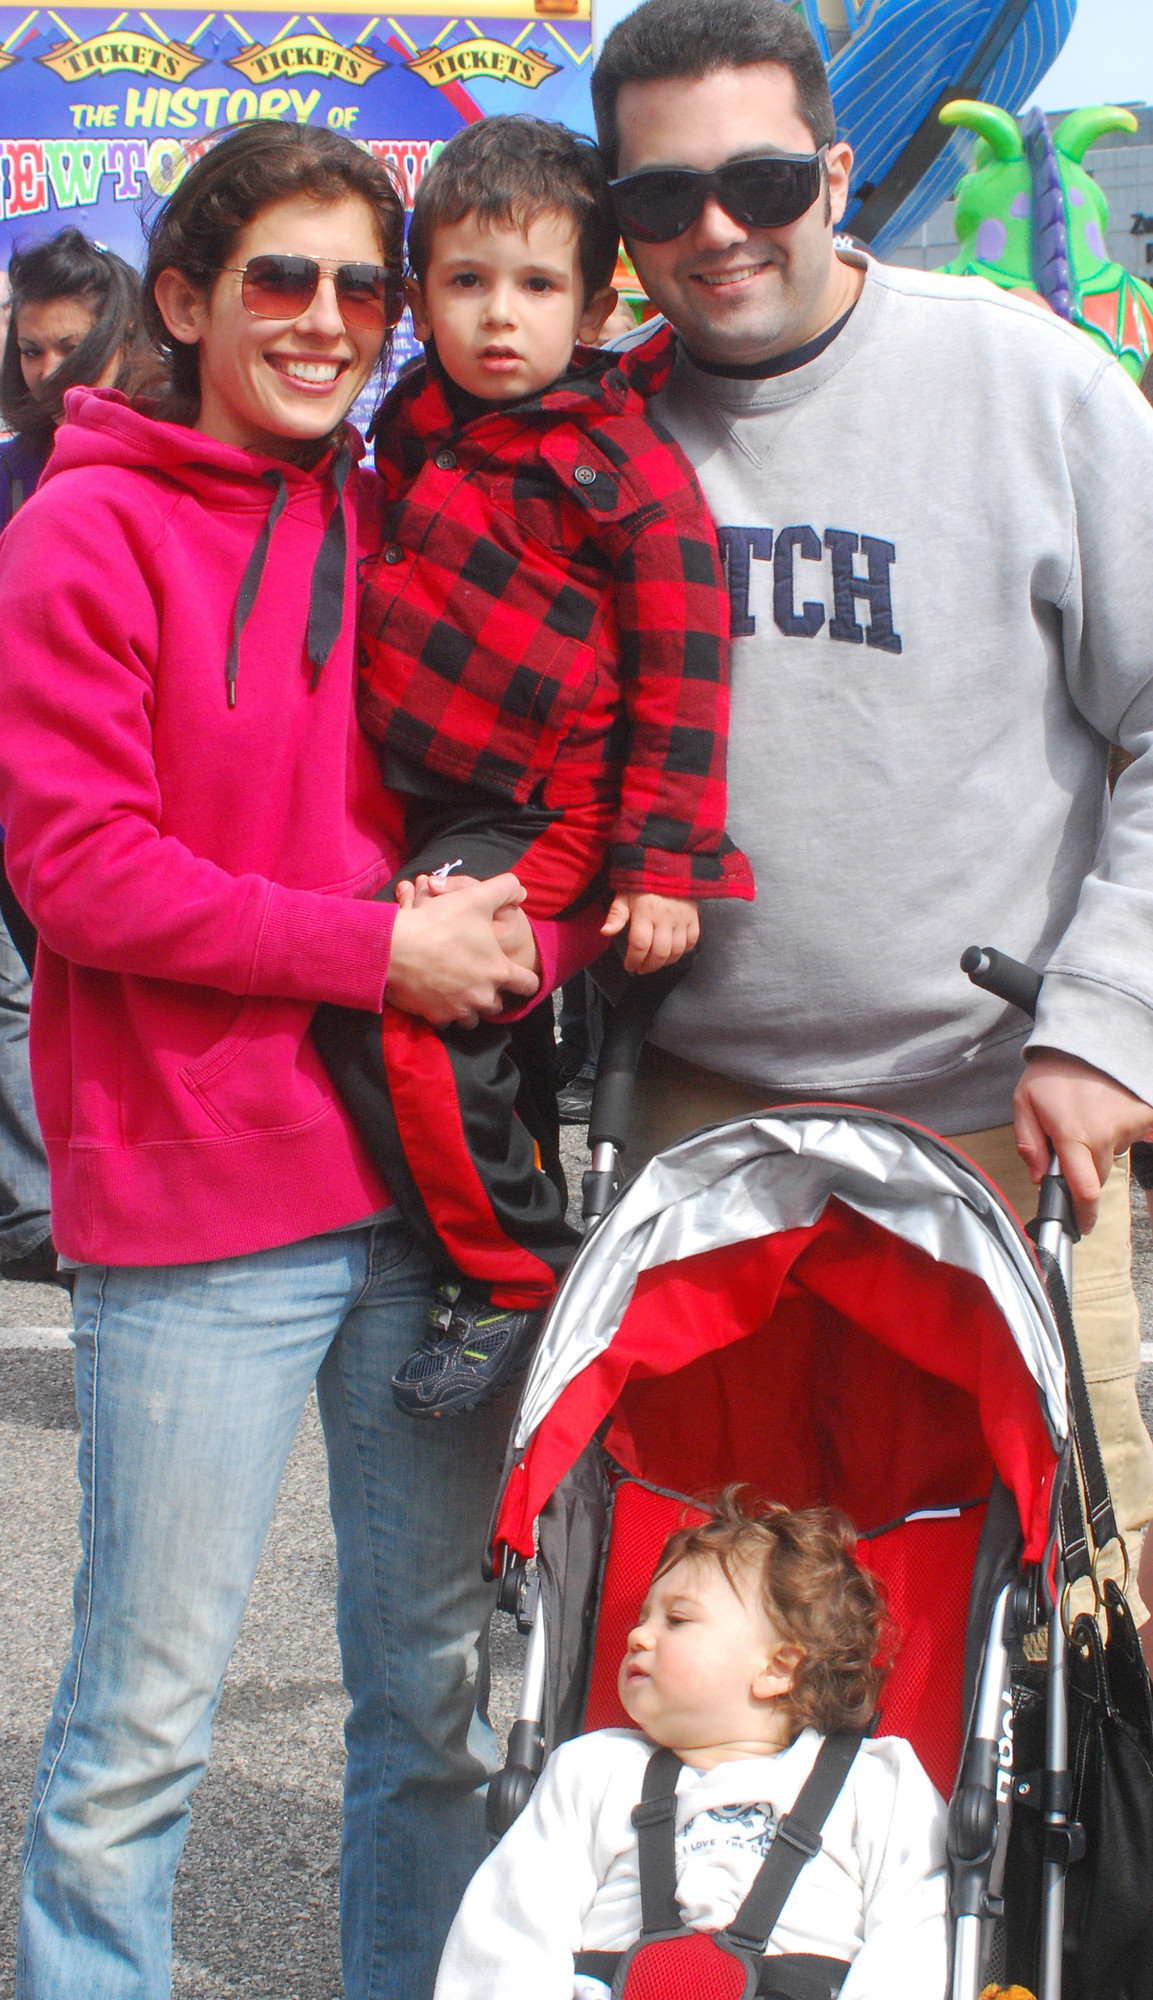 Naomi and Matt Knee of Bellmore and their kids Sammy and Jacob were among the thousands of attendees at Kids Fest.